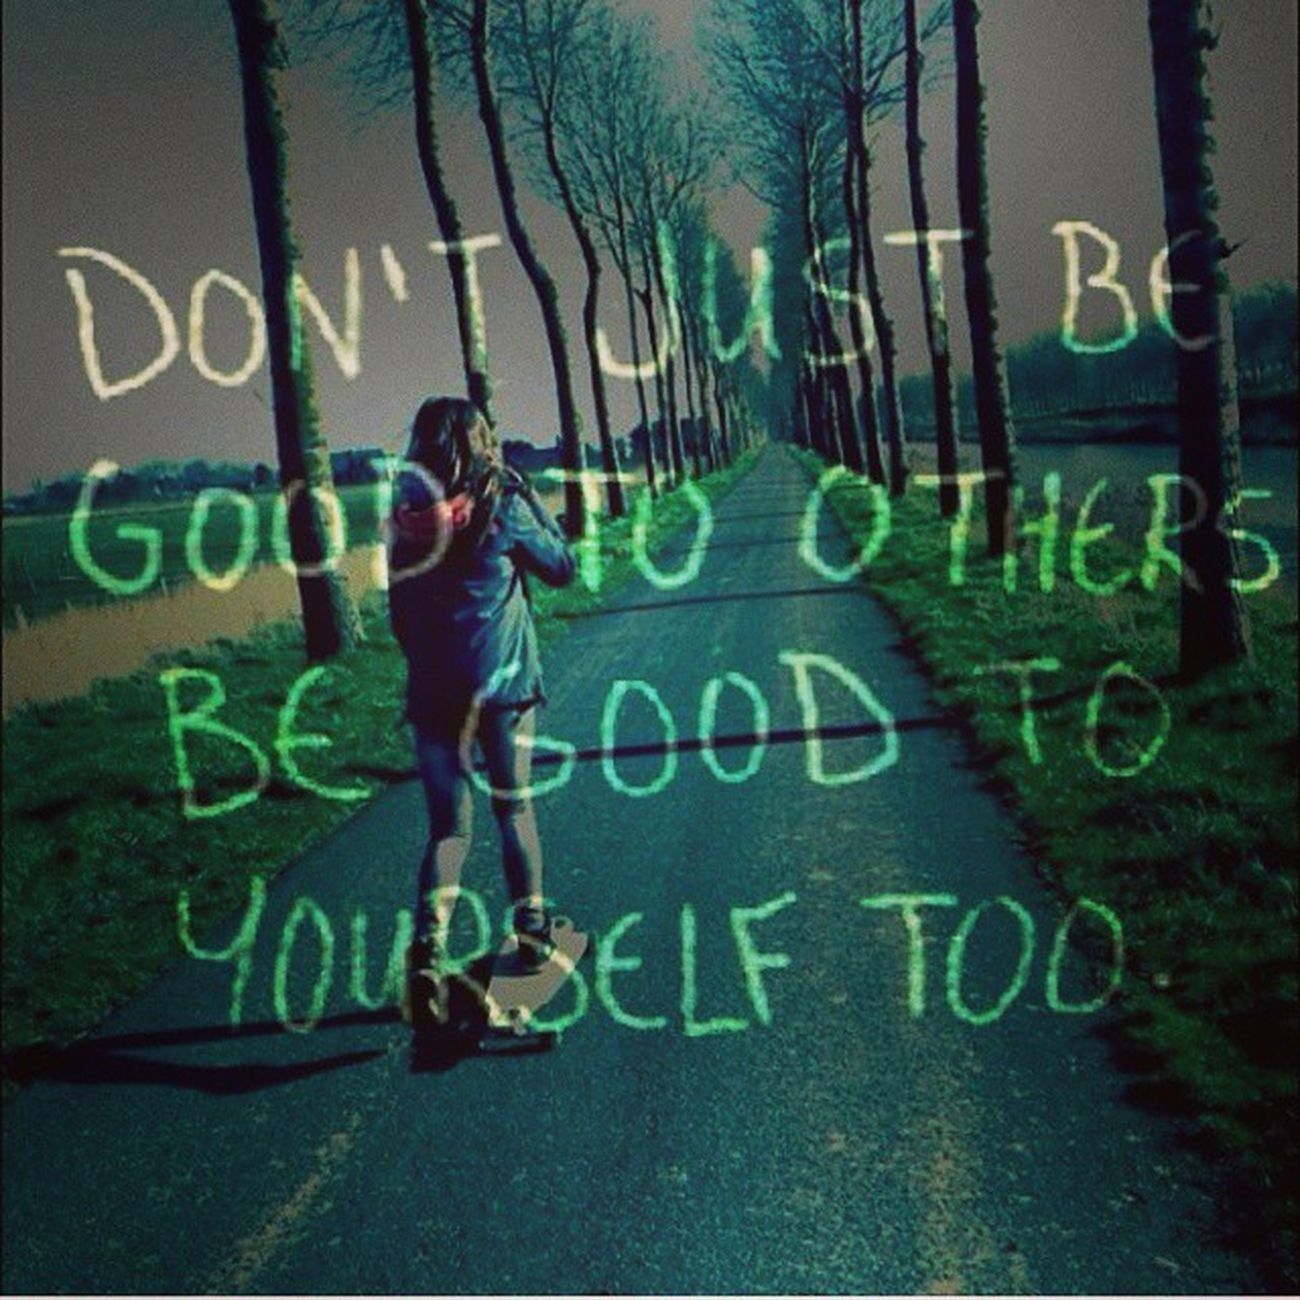 Don't just be good to others, be good to yourself too !!❤️❤️❤️❤️ Longbord Green Superdry Adiddas BrownHair Happy Me Free Myself Yolo Quost Tekstje ❤️✌️👍👌😃😁